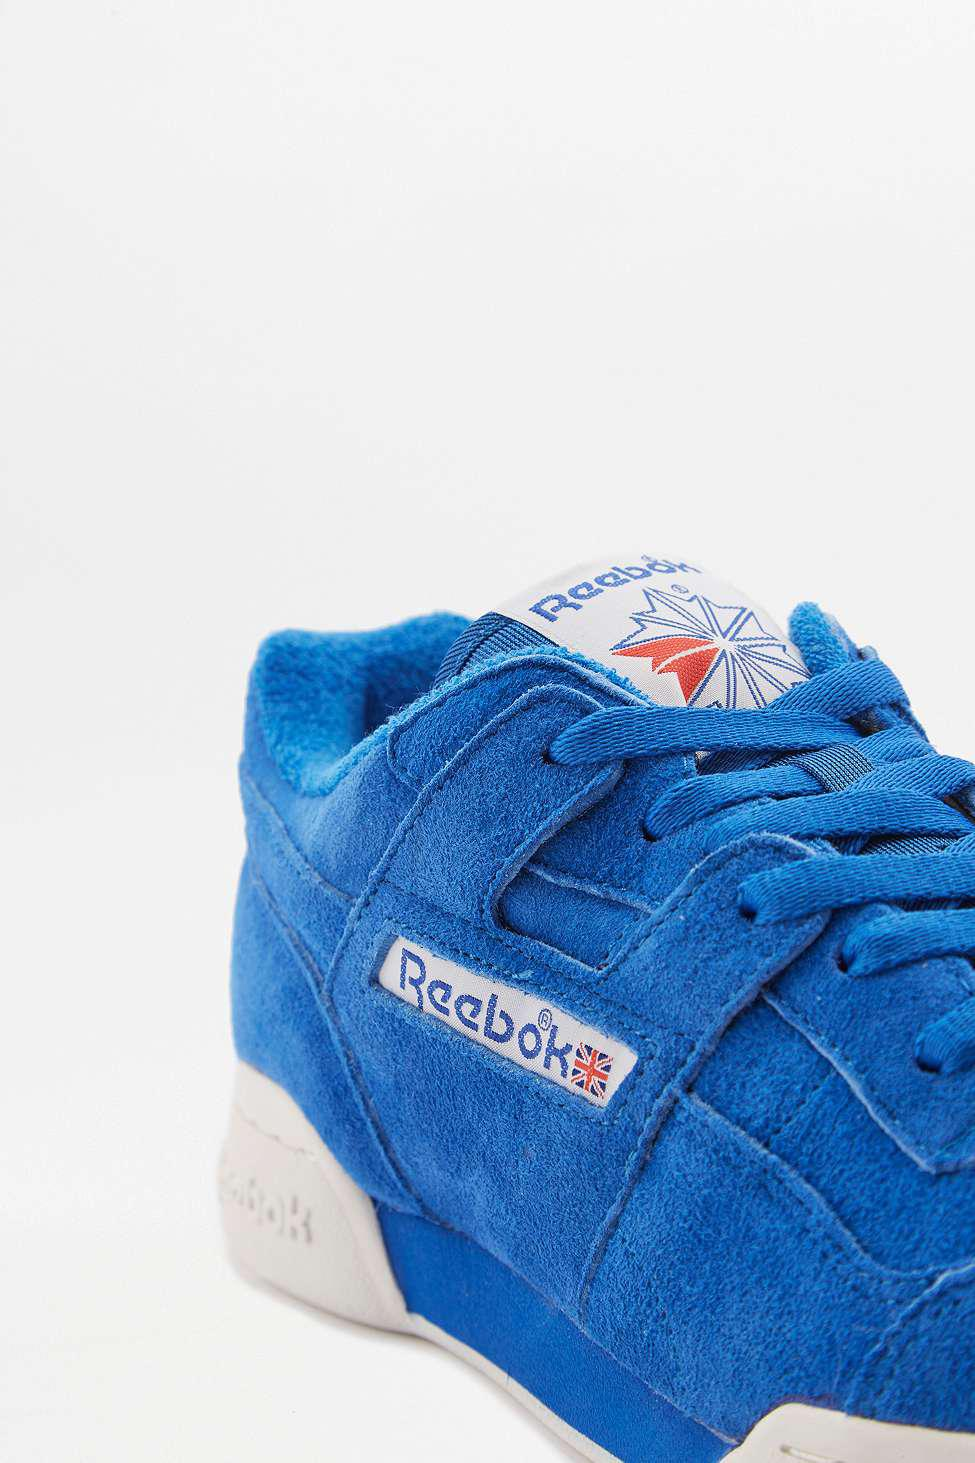 Reebok Workout Plus Vintage Awesome Blue Trainers - Mens Uk 8 in ... b6380aa25